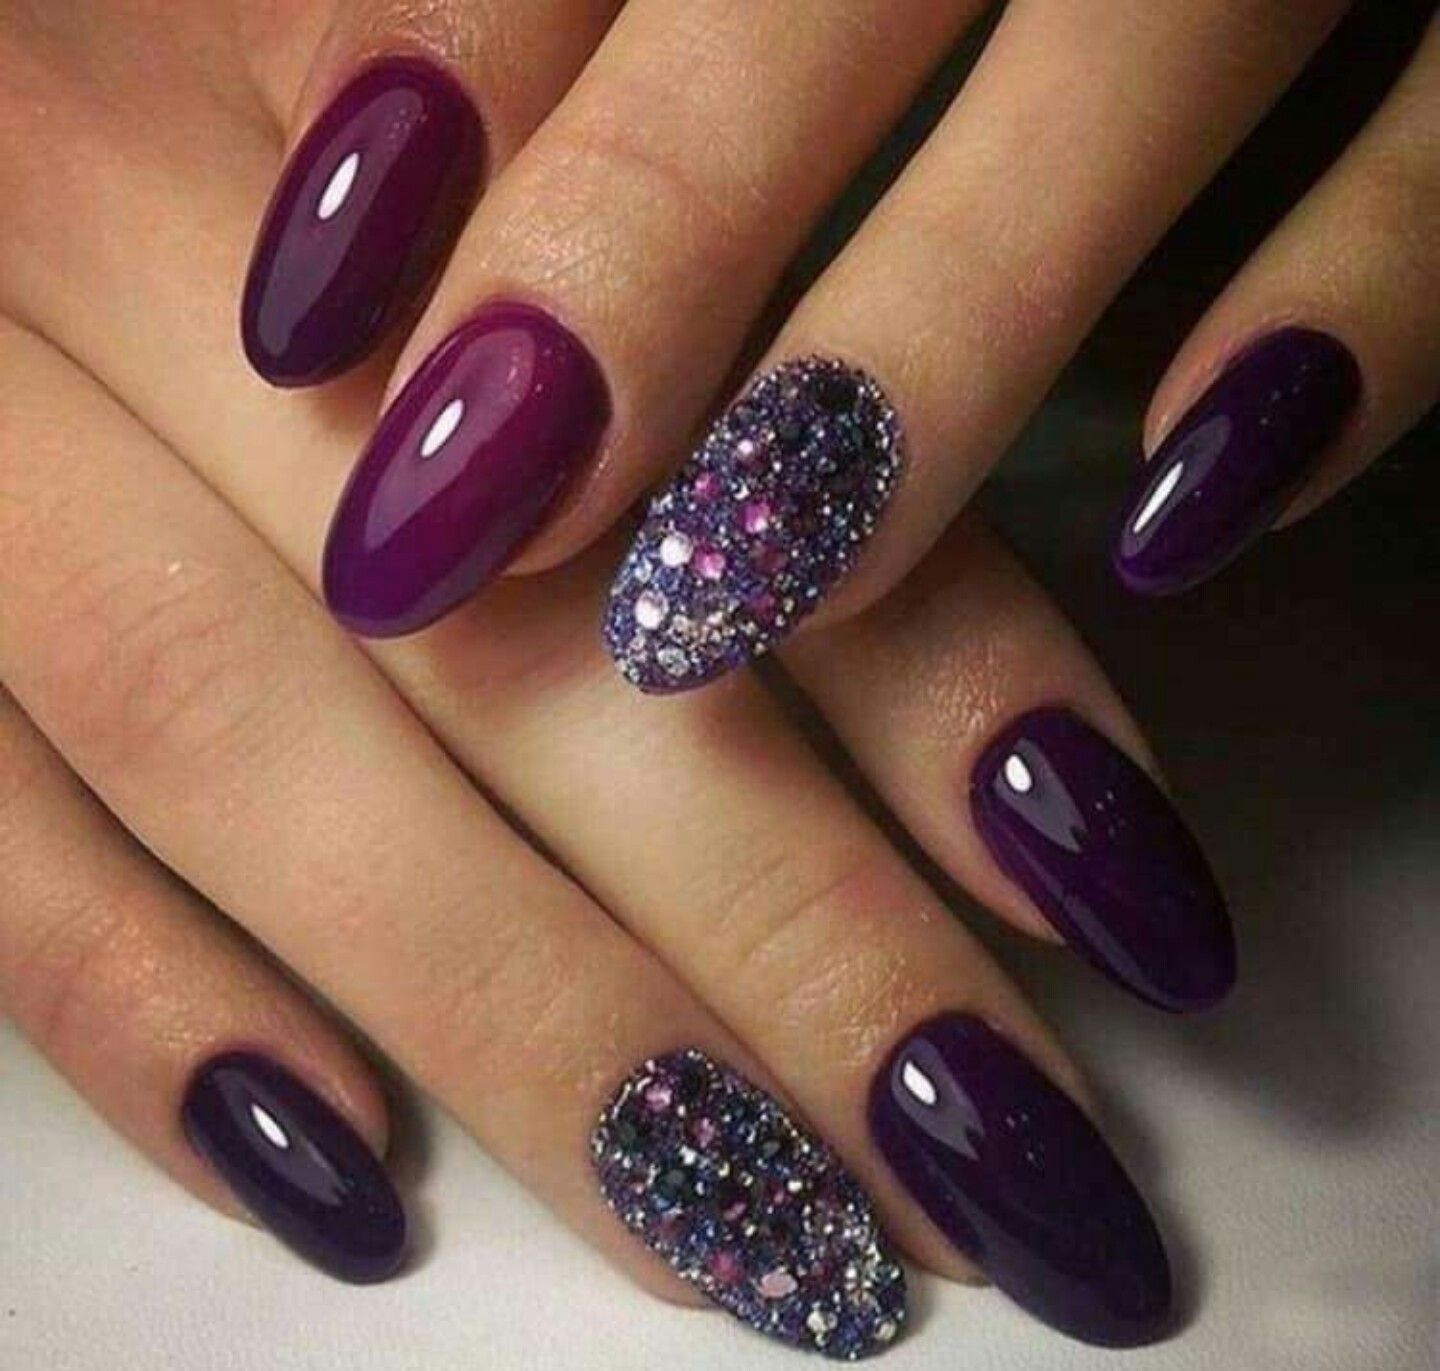 Pin By Deniicek On Nails Fall Acrylic Nails Purple Nail Art Simple Fall Nails